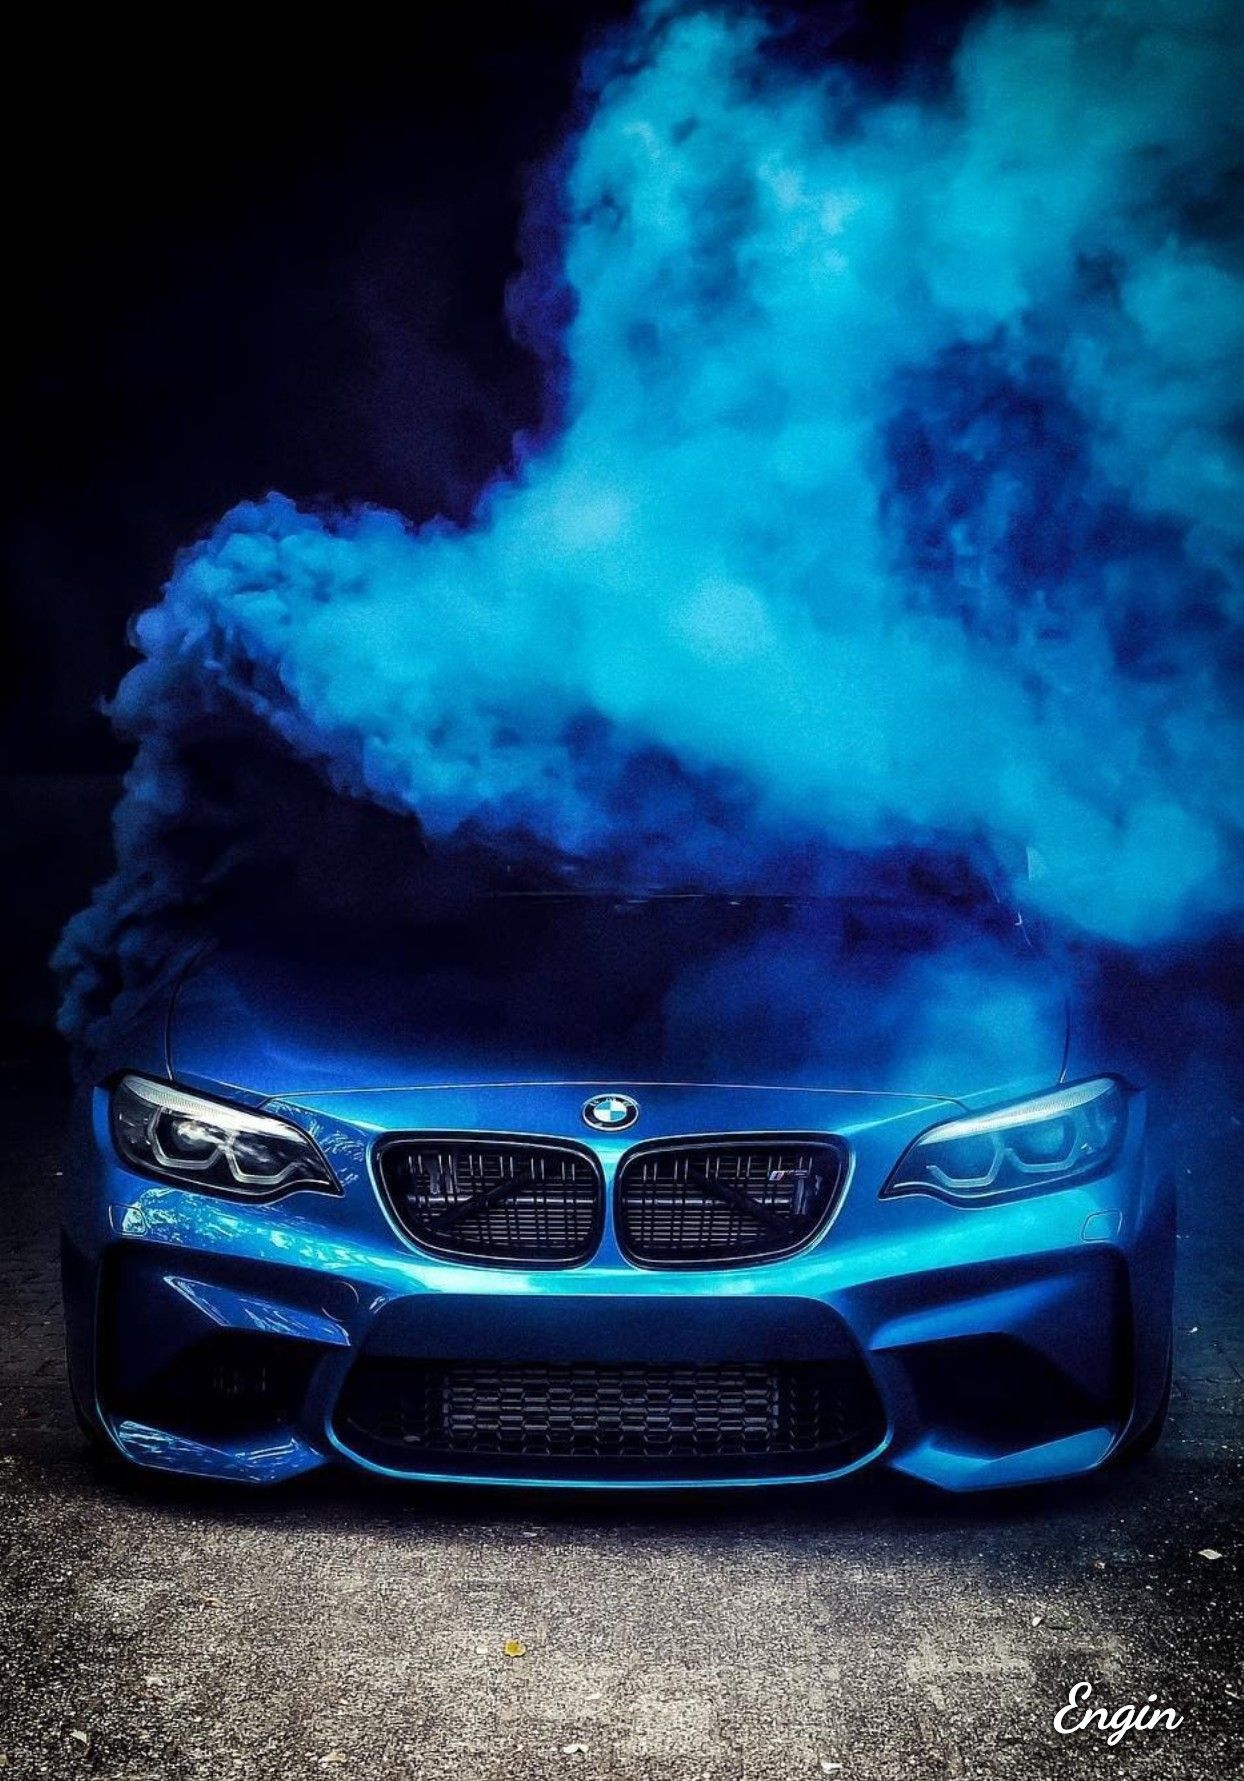 #bmw #carappeal #amazingcars